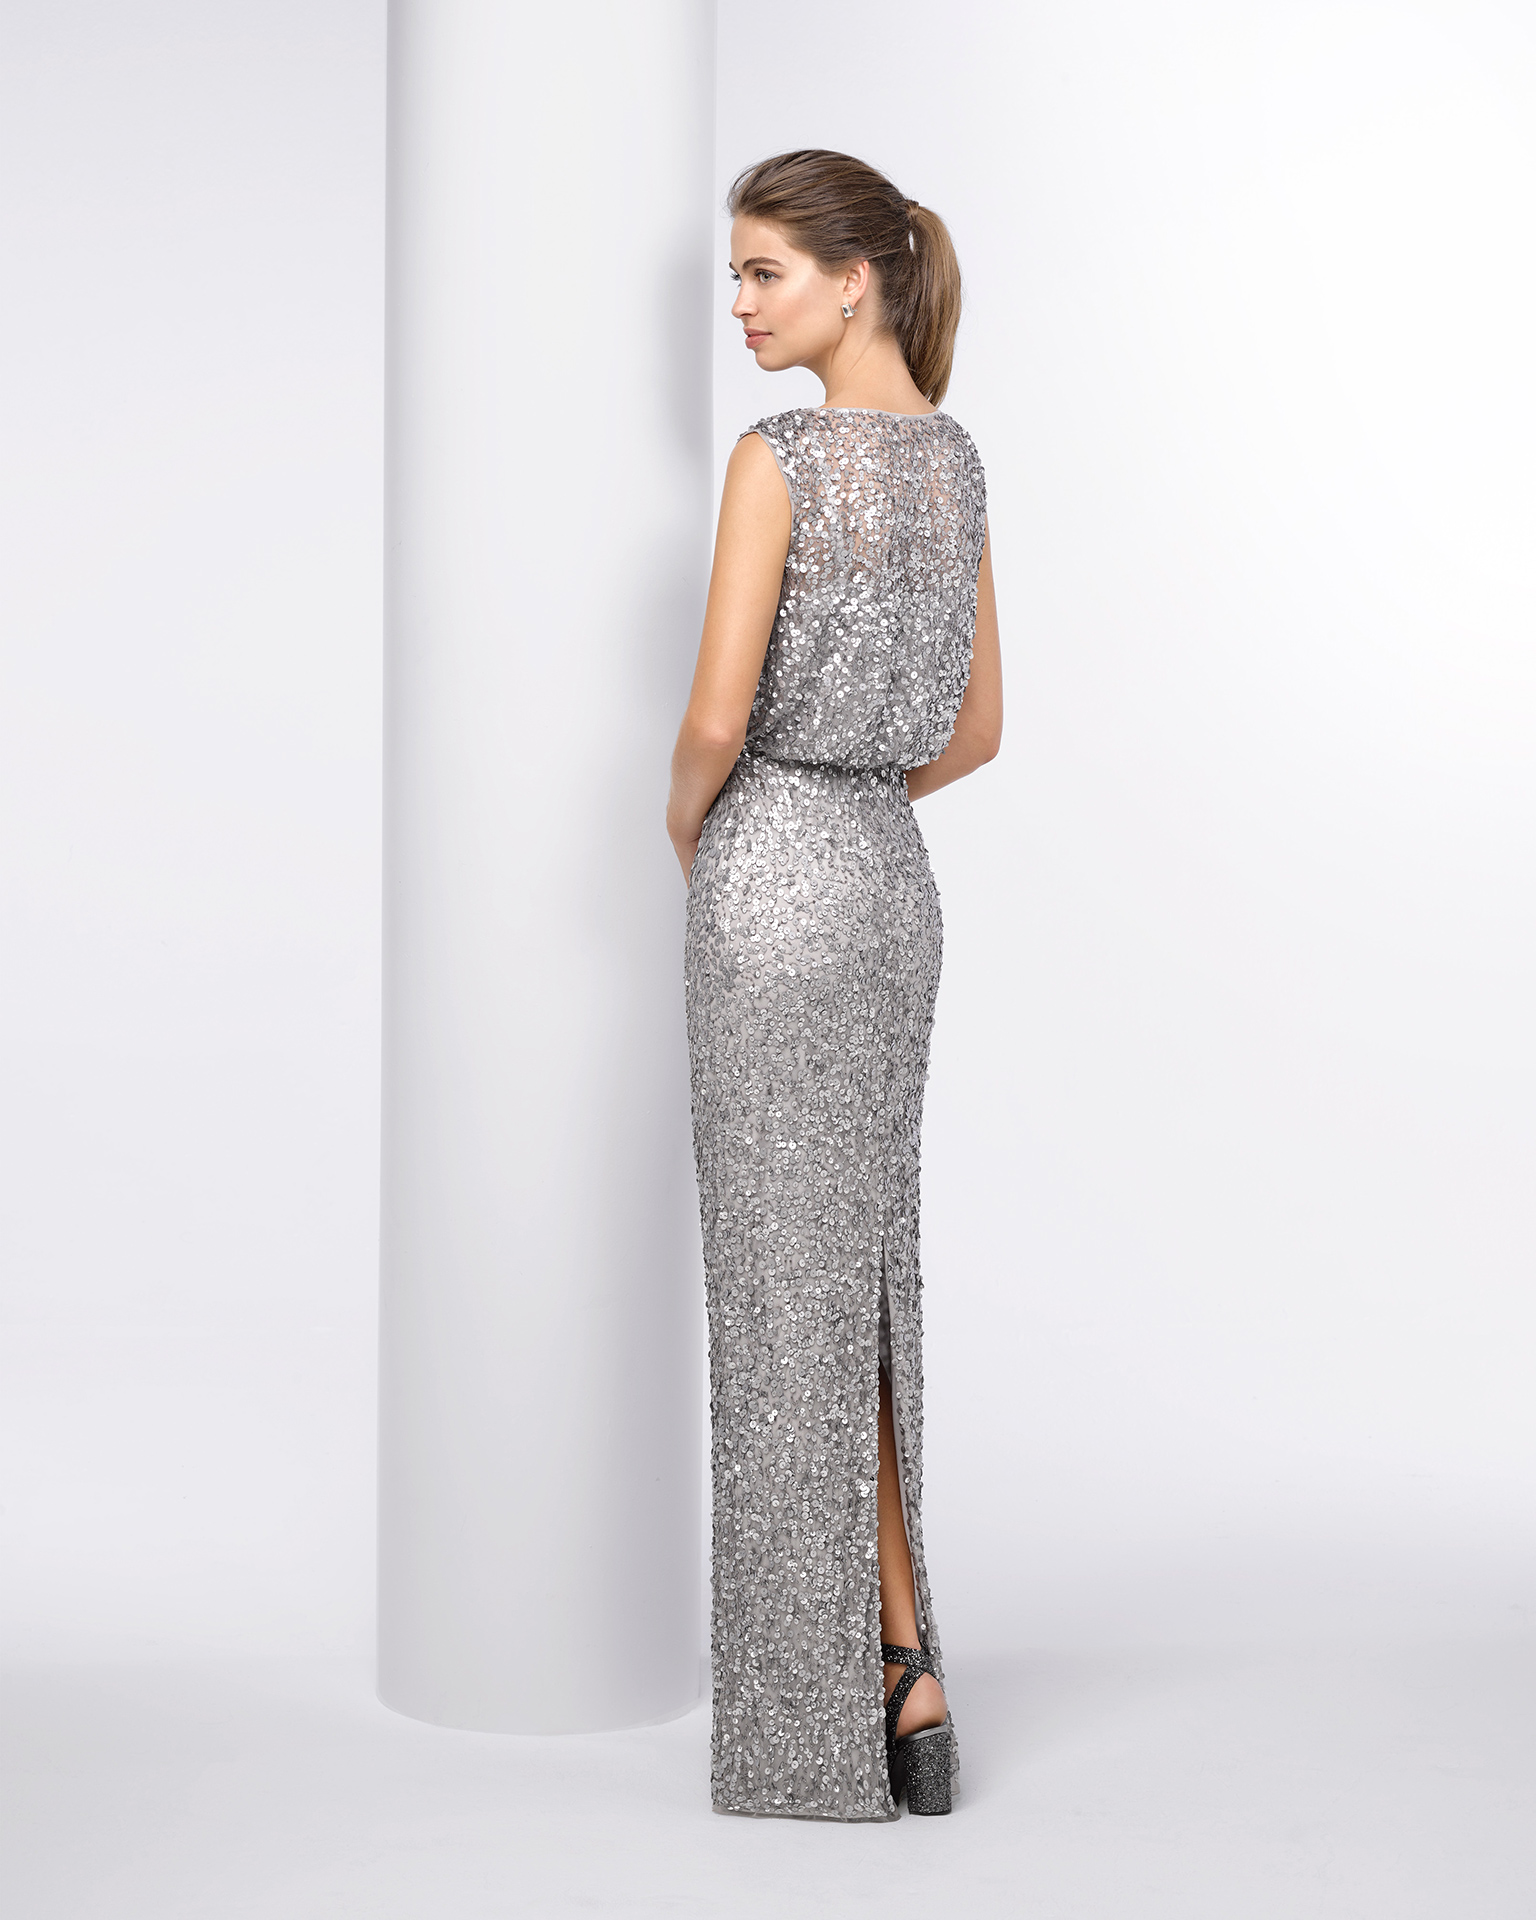 Long beaded cocktail dress. Available in silver and navy blue. 2018 FIESTA AIRE BARCELONA Collection.